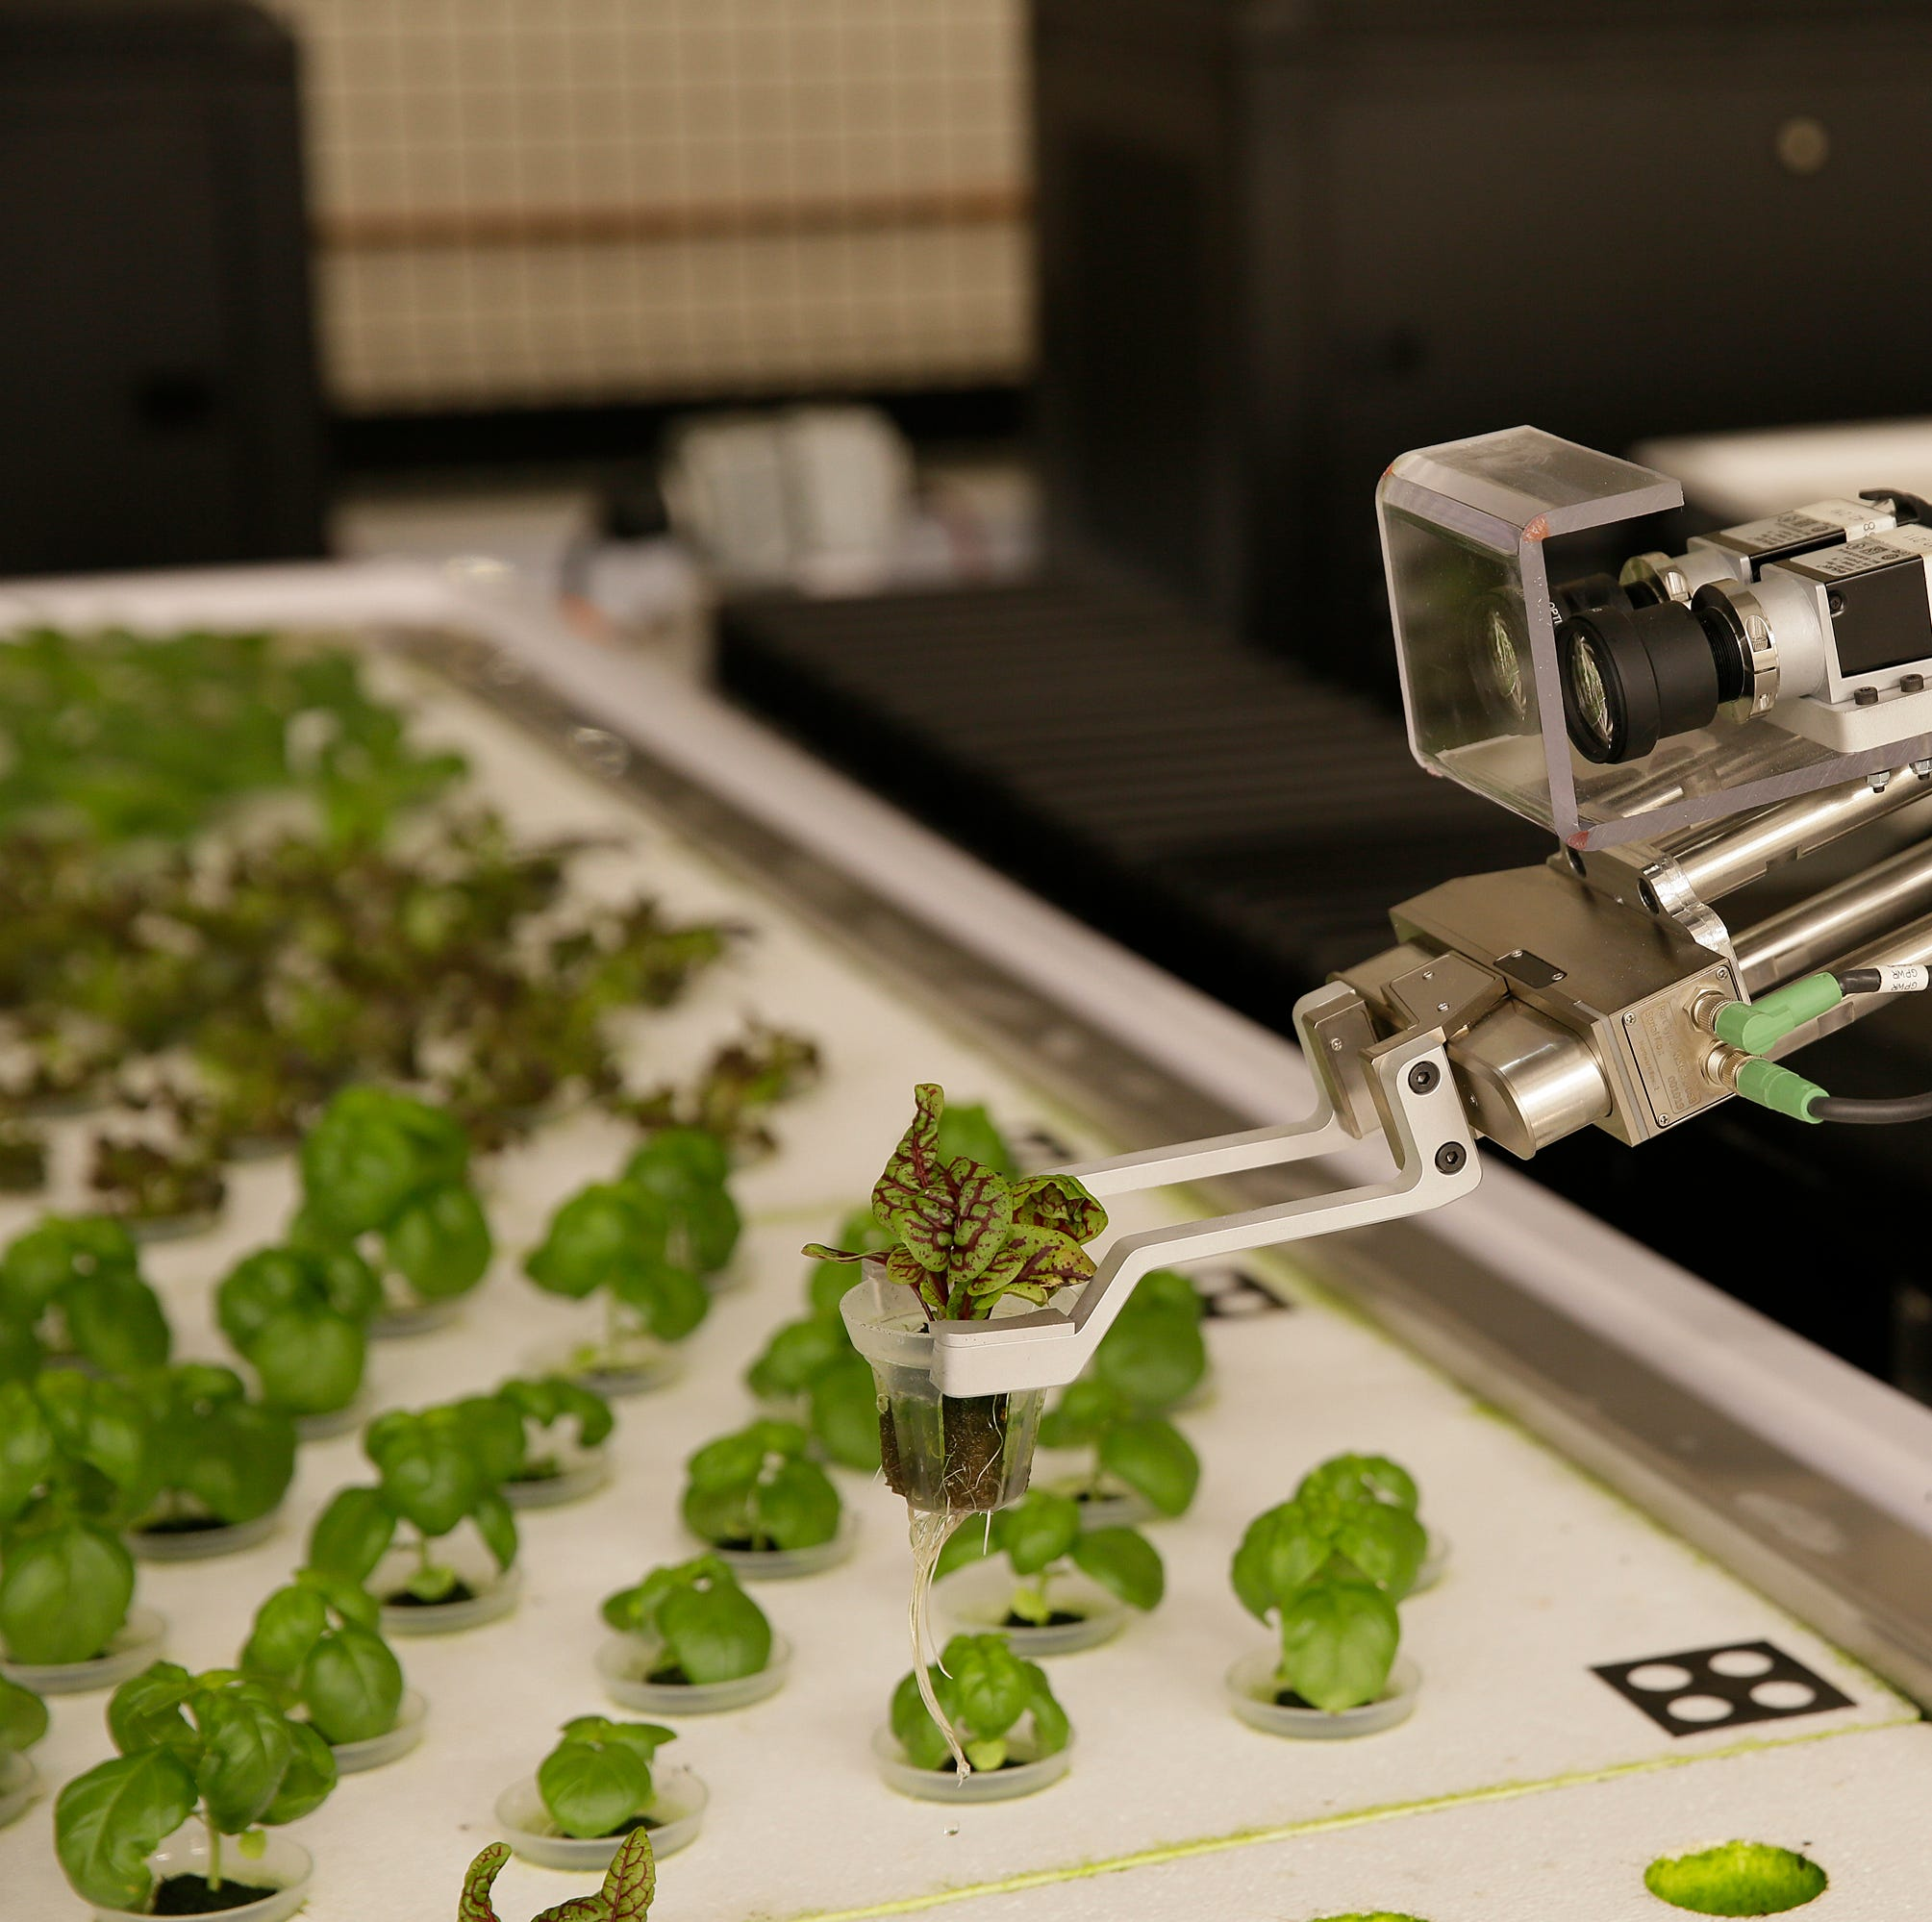 Meet America's farmers of the future: robots